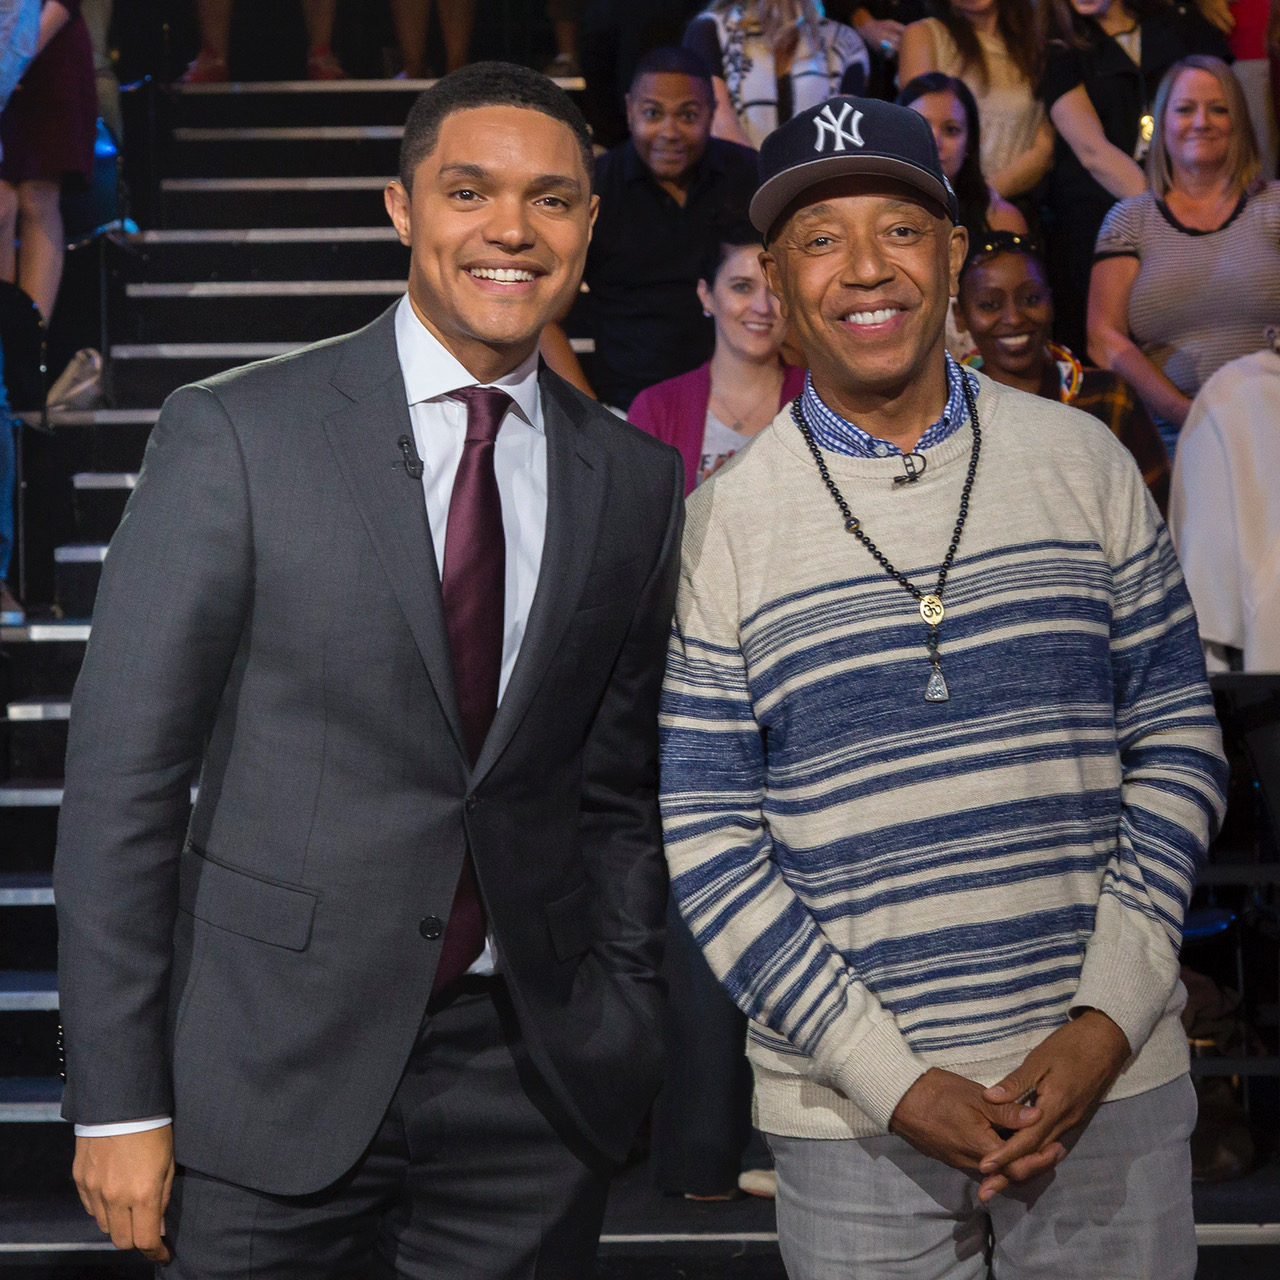 Trevor Noah interviews Russell on the Daily Show